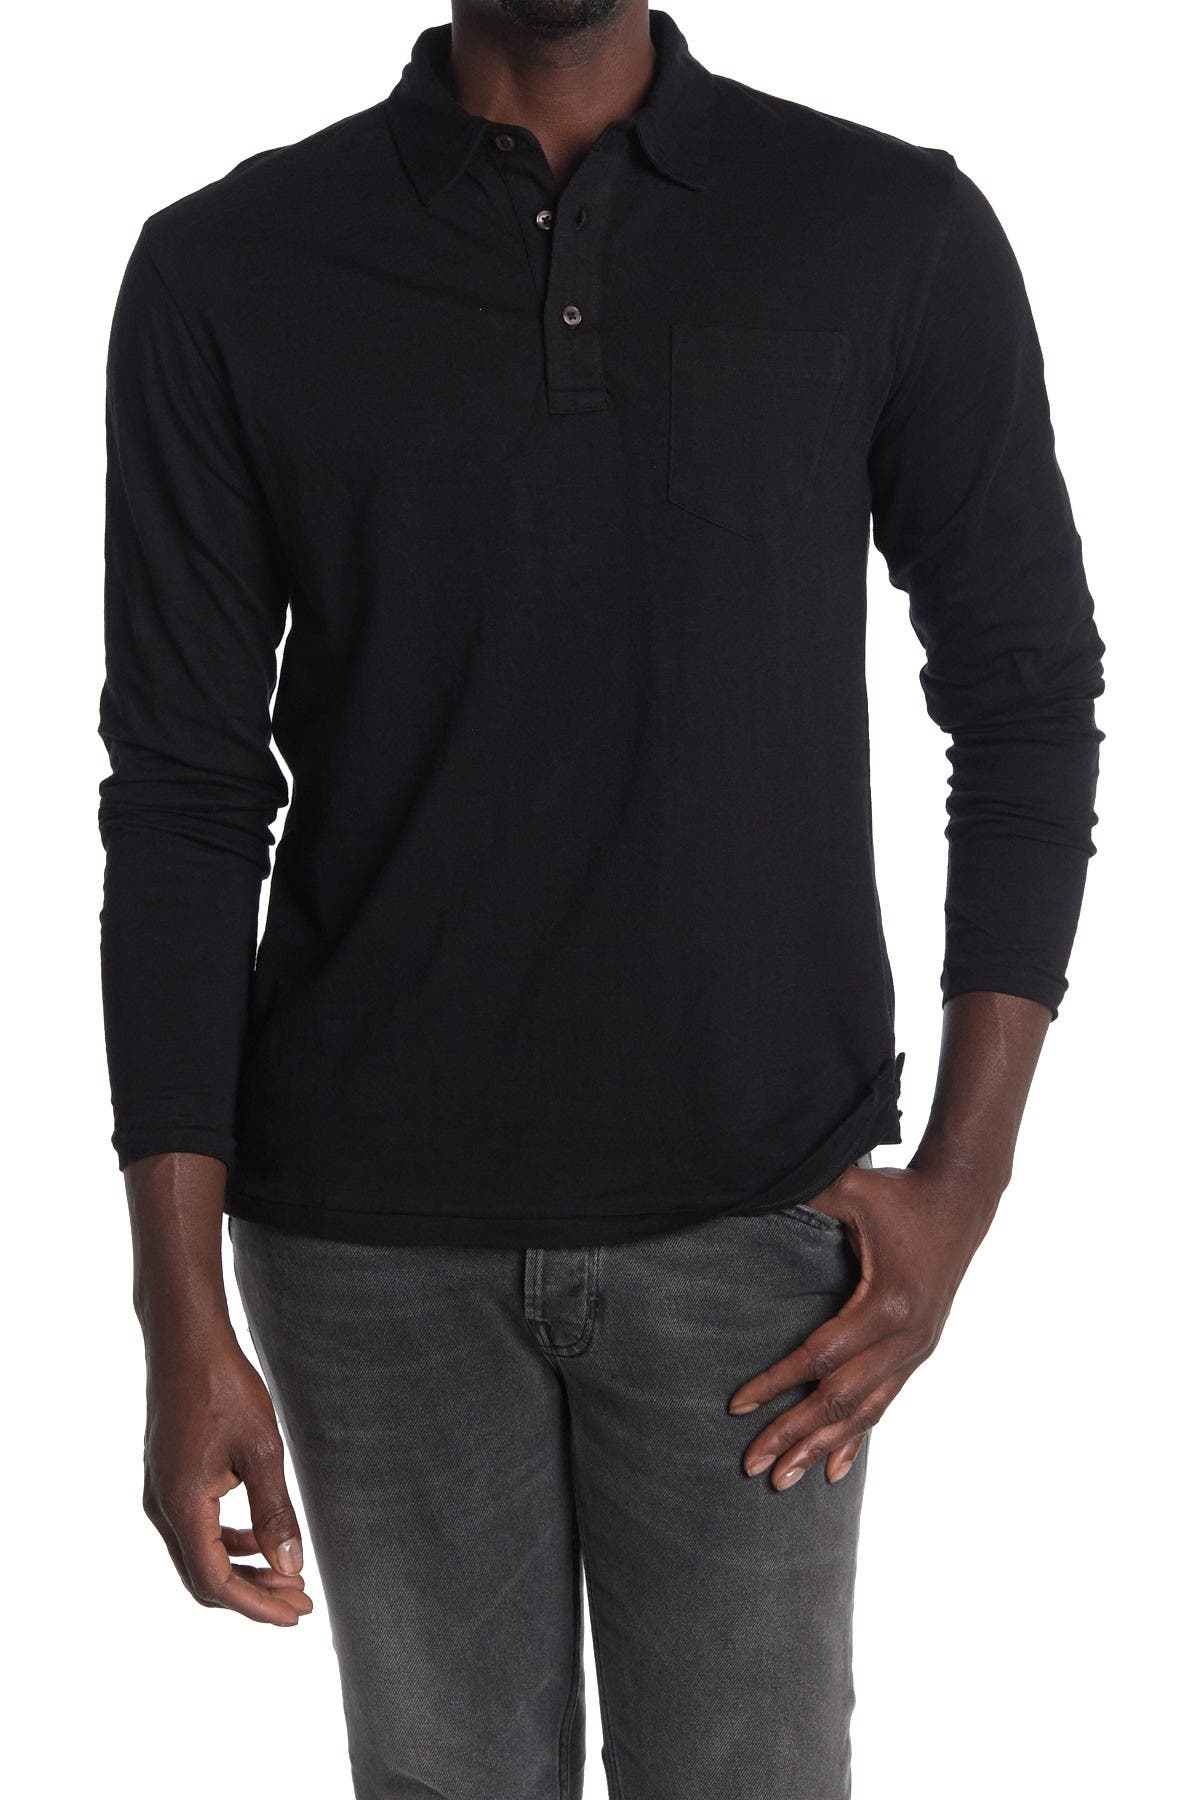 Image of Slate & Stone Solid Long Sleeve Knit Polo